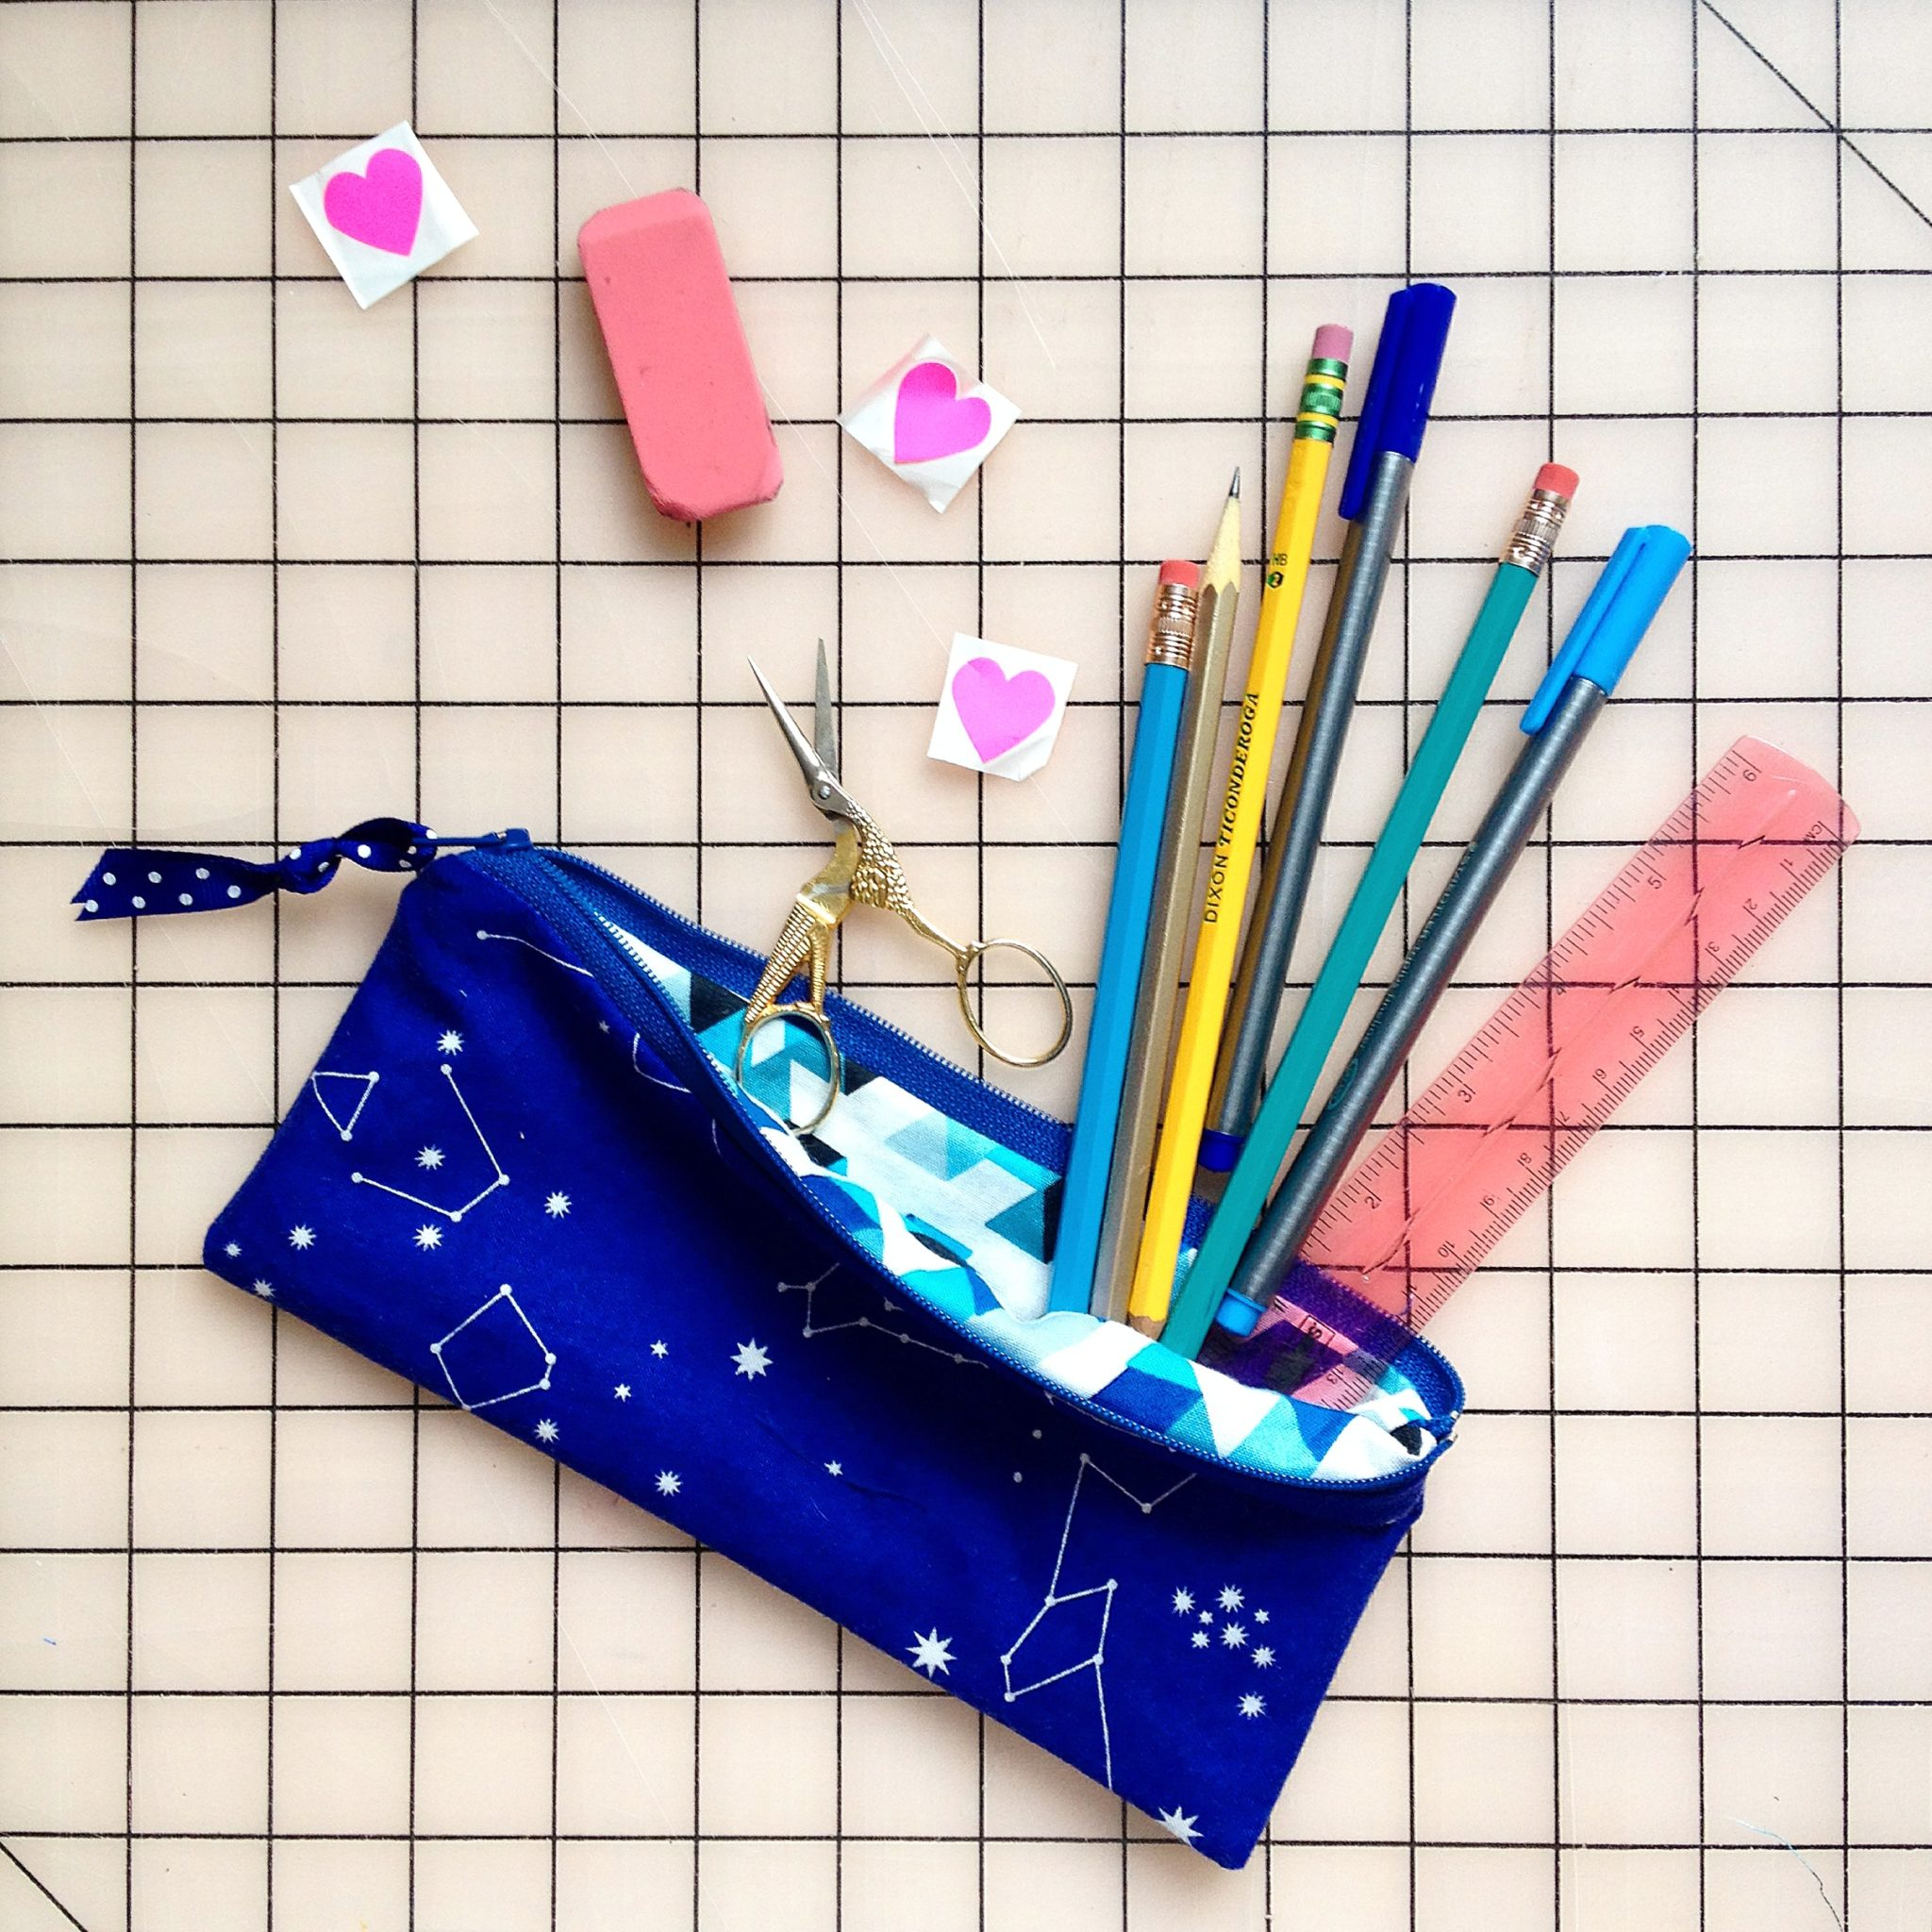 Crochet Zipper Pouch Tutorial : Crochet Zipper Pouch Pattern - Flax & Twine